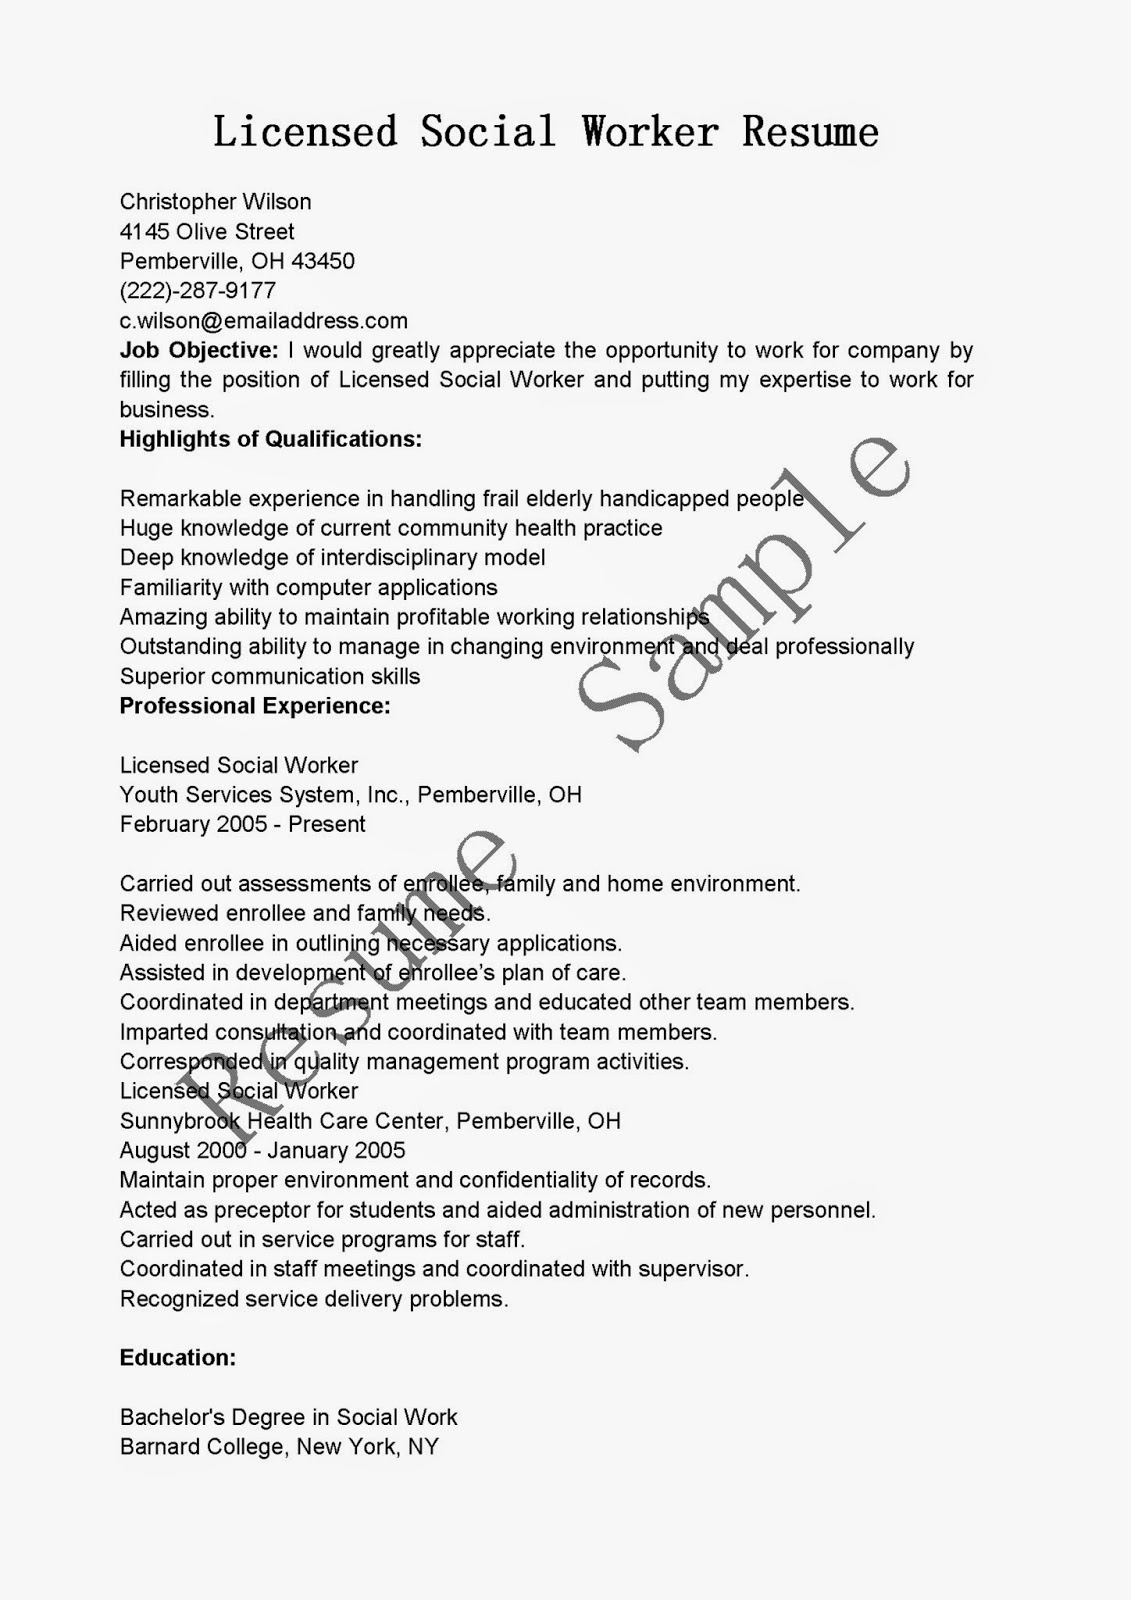 resume samples licensed social worker resume sample work resume 3555